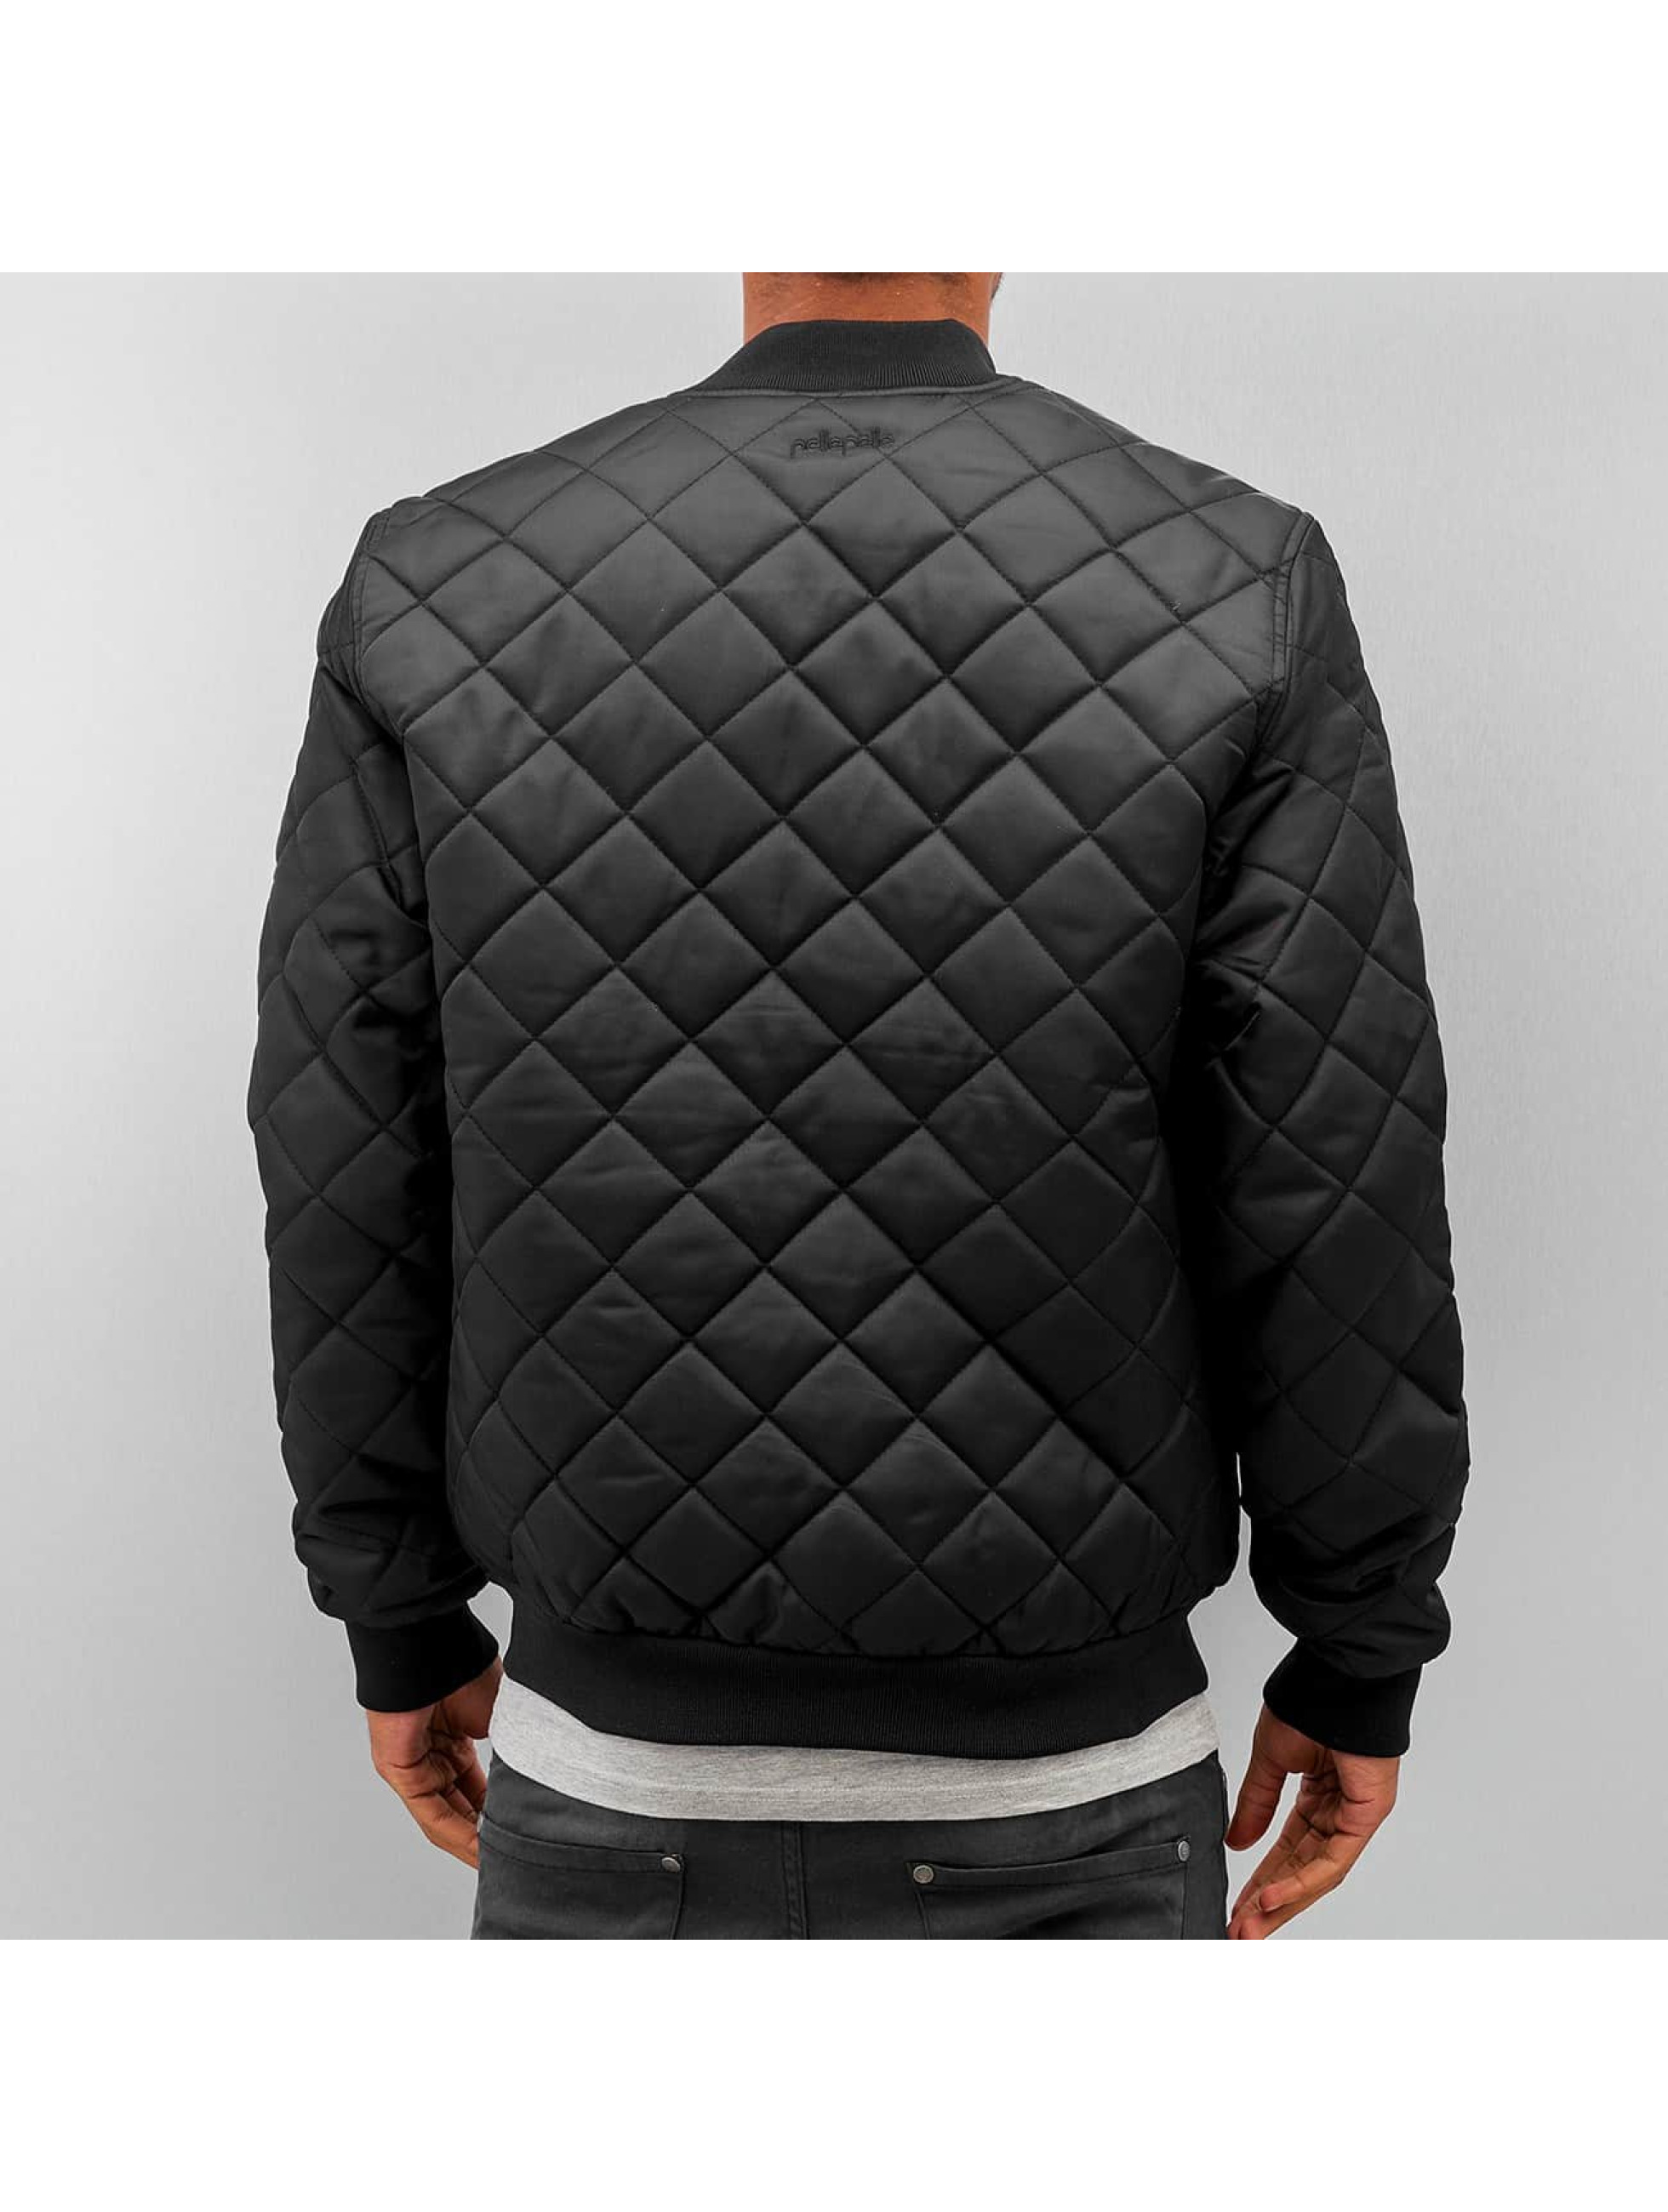 Pelle Pelle Manteau hiver Million Dollar Quilted noir